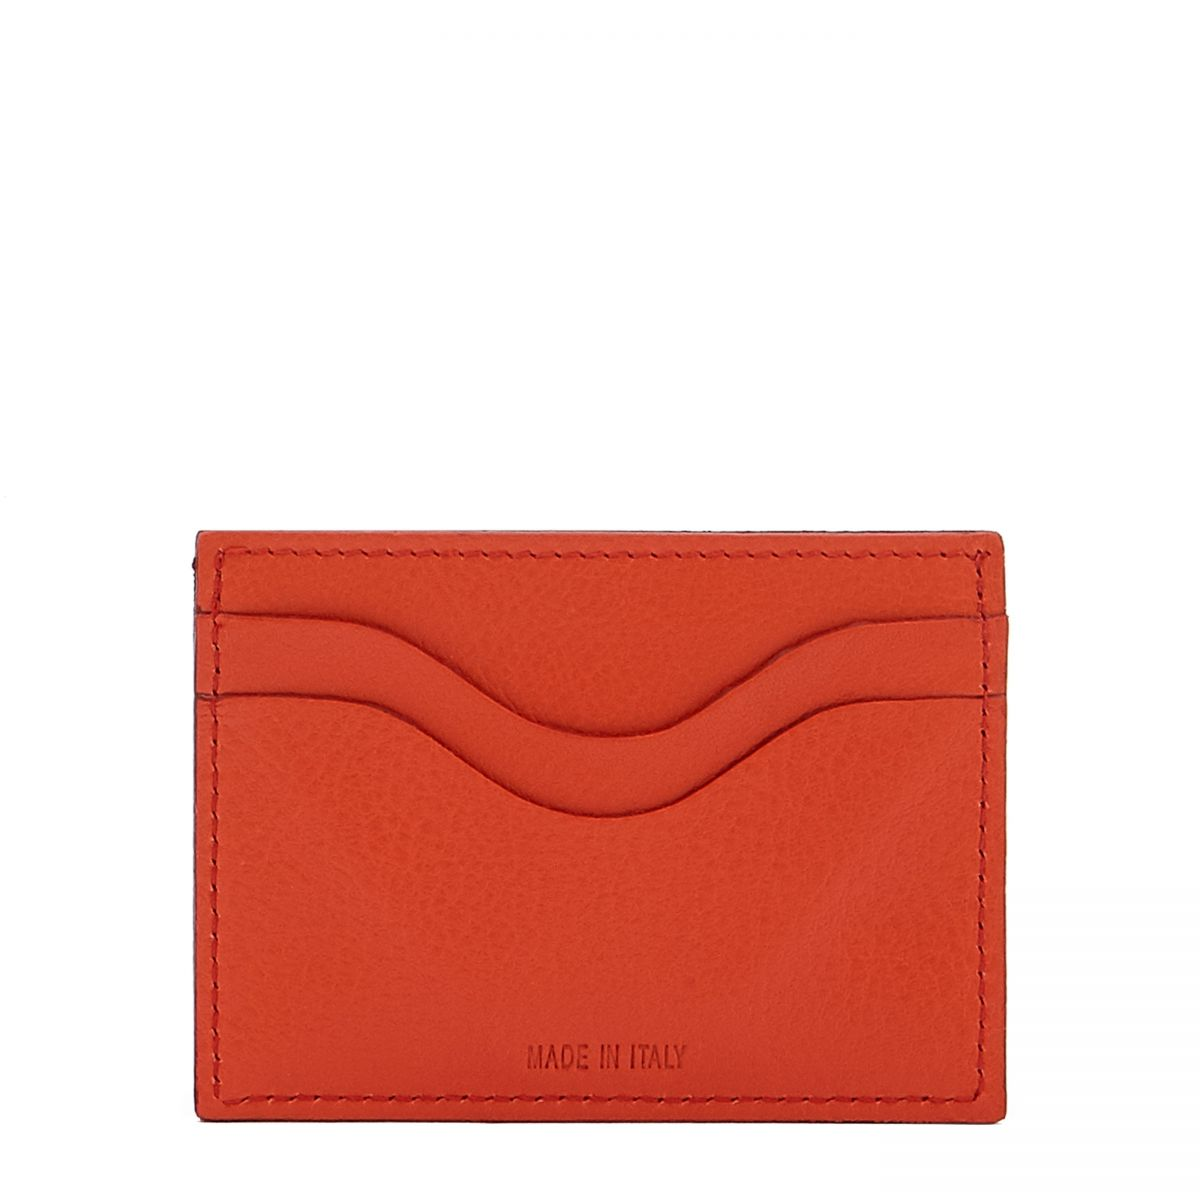 Card Case  in Cowhide Leather SCC050 color Gazpacho | Details